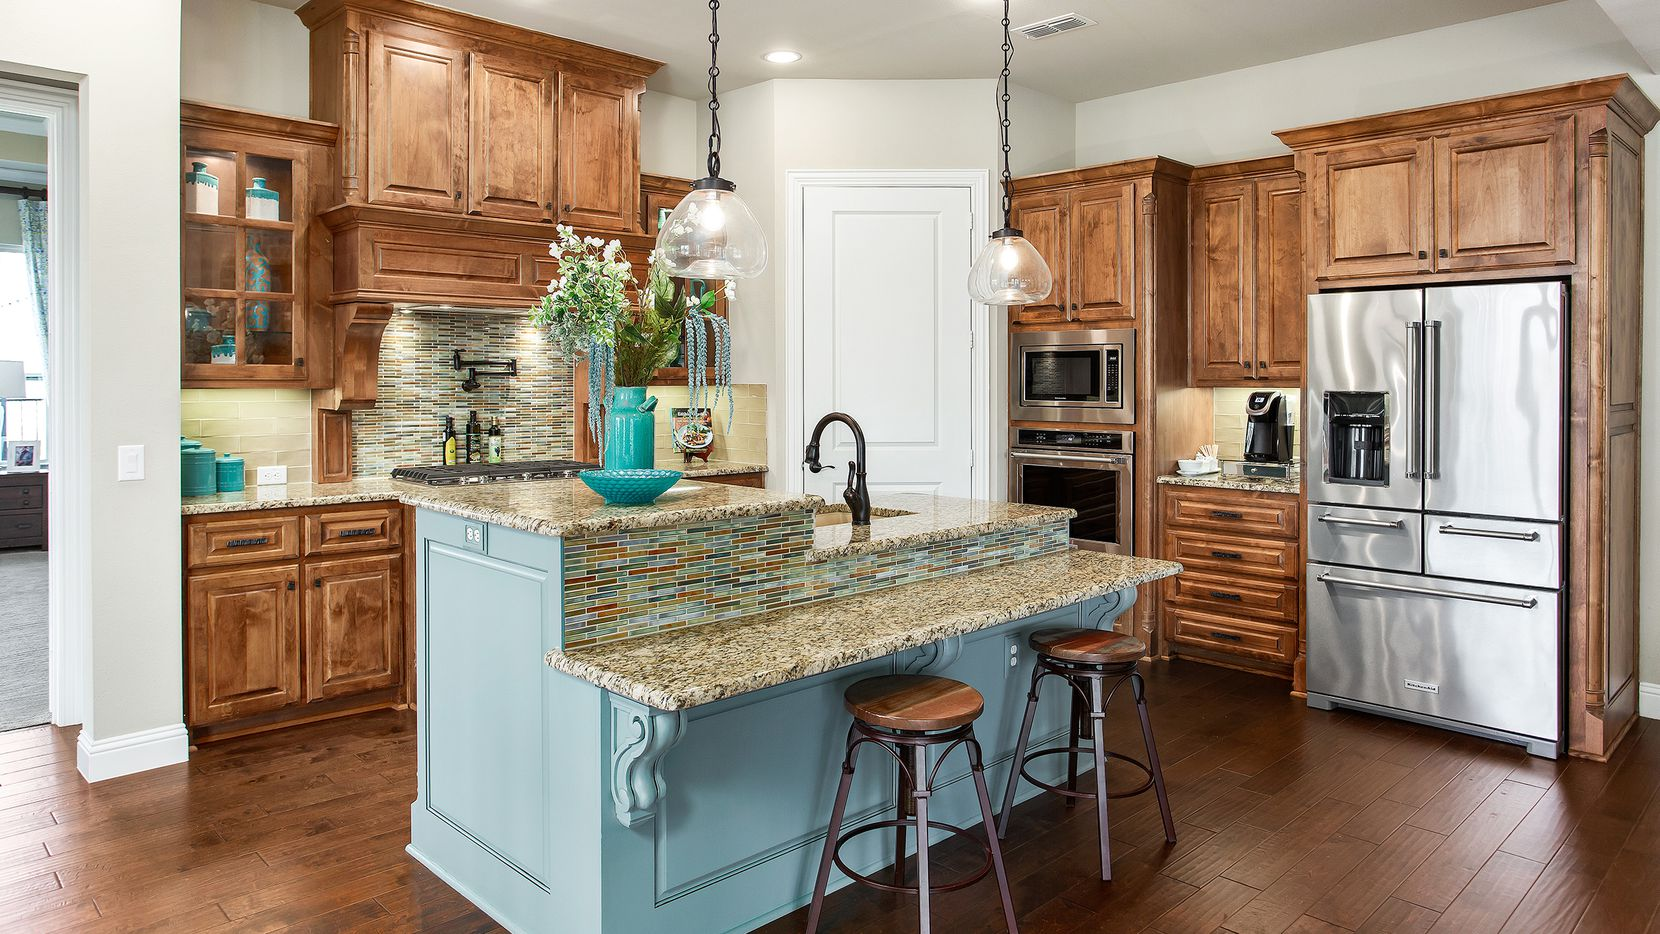 Homebuying opportunities are dwindling in Orchard Flower, an award-winning 55-plus community featuring low-maintenance living in Flower Mound.